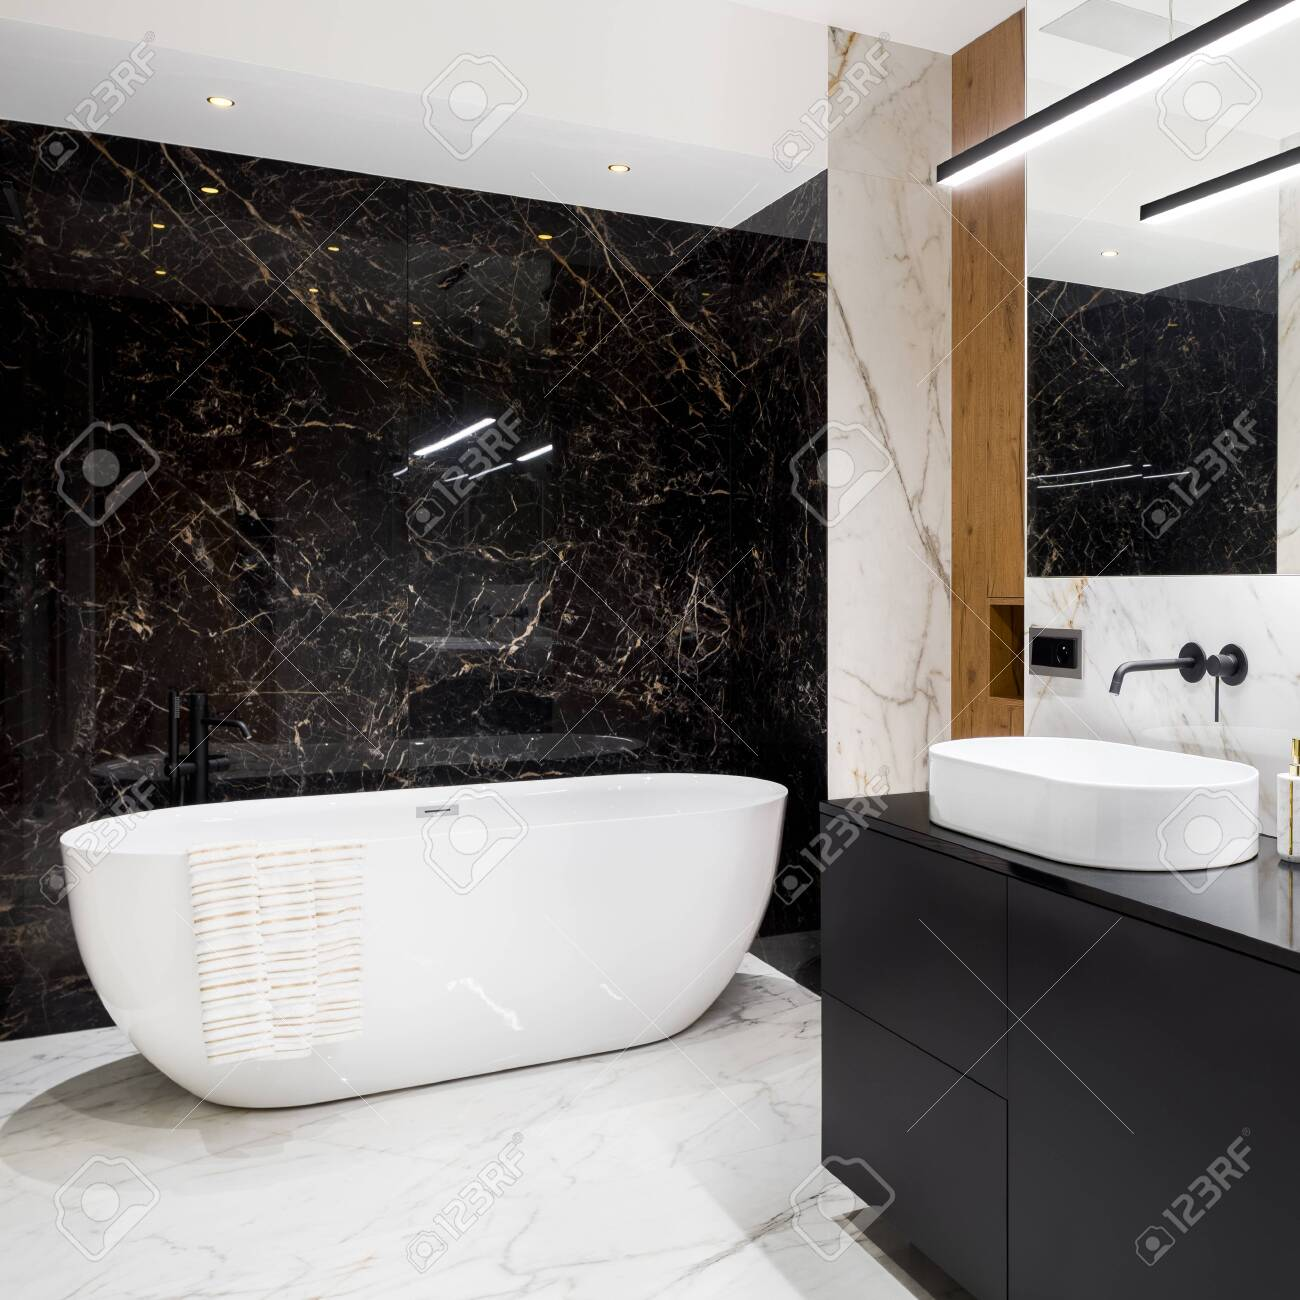 luxury and stylish bathroom with black and white marble tiles stock photo picture and royalty free image image 150386639